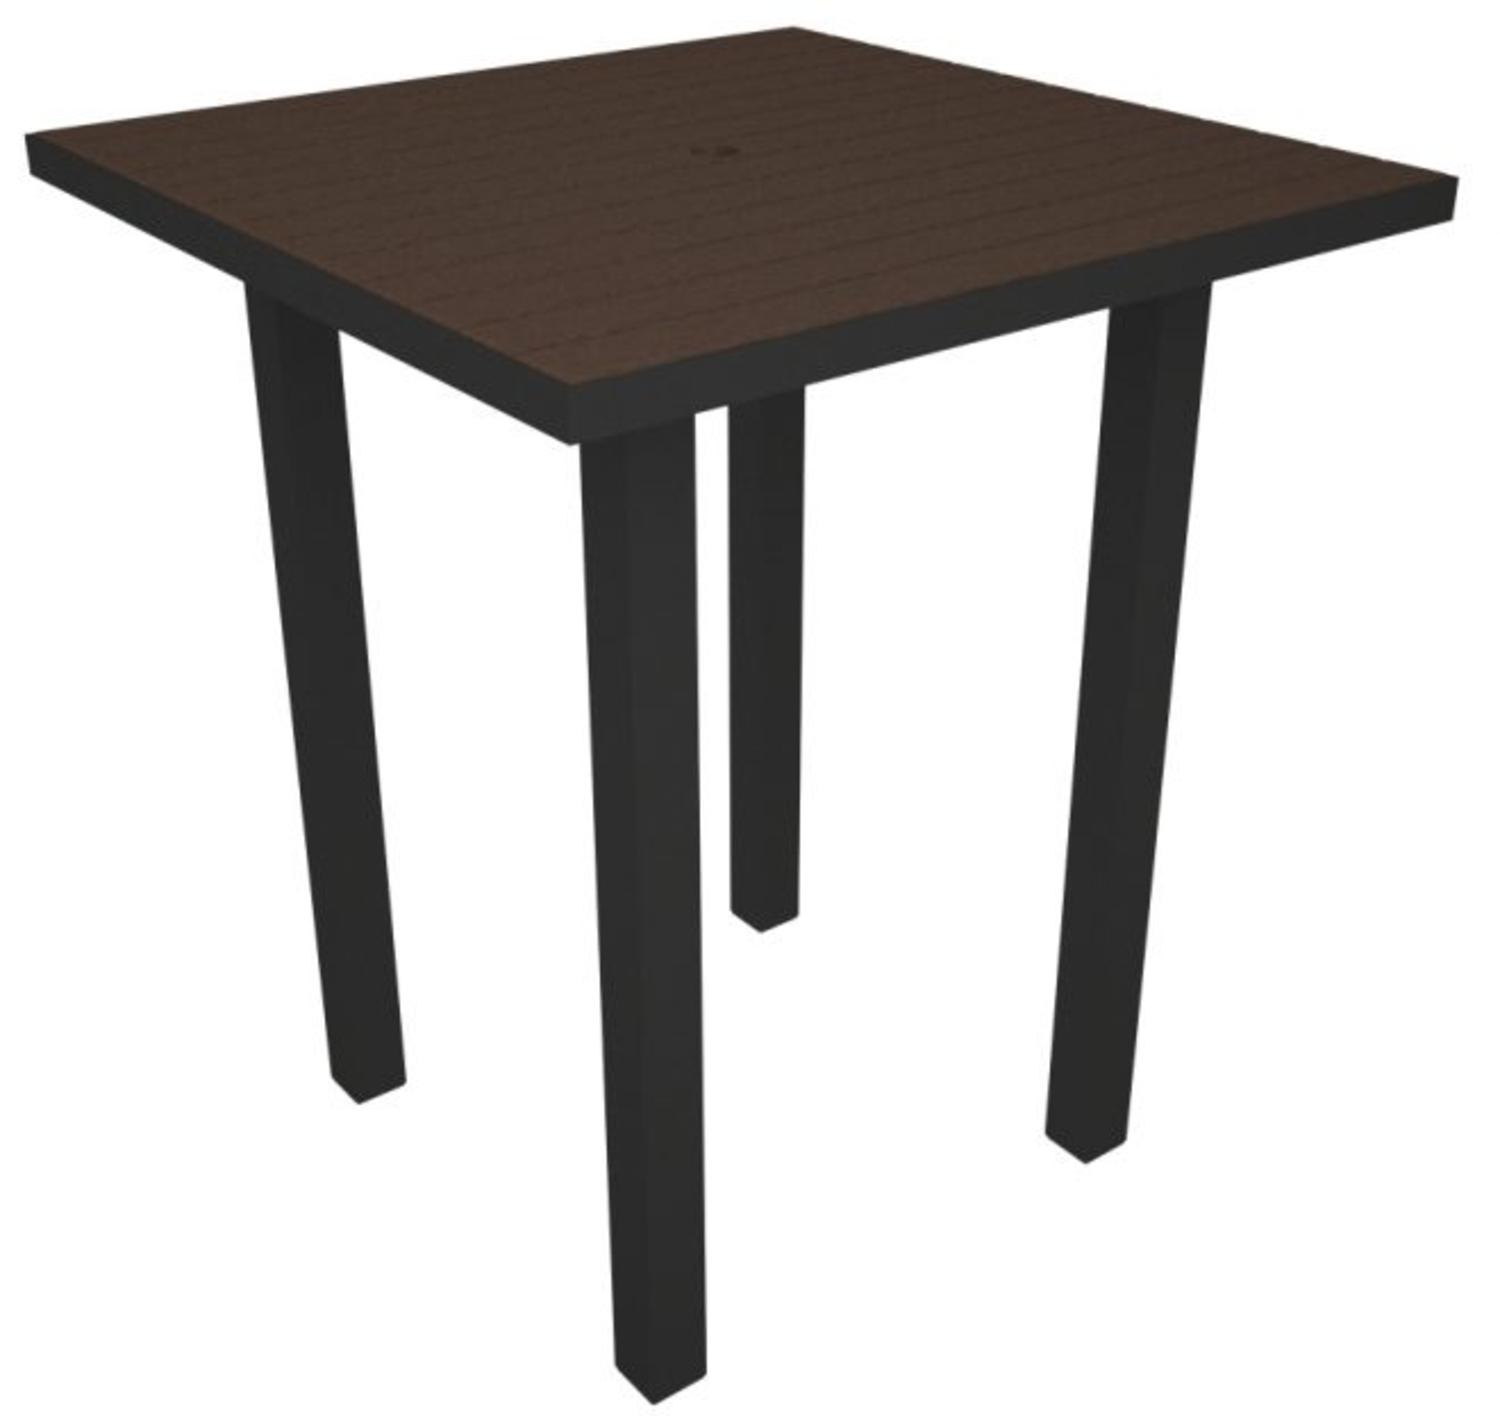 "36"" Recycled Earth-Friendly Square Pub Table Mahogany with Black Frame by Eco-Friendly Furnishings"